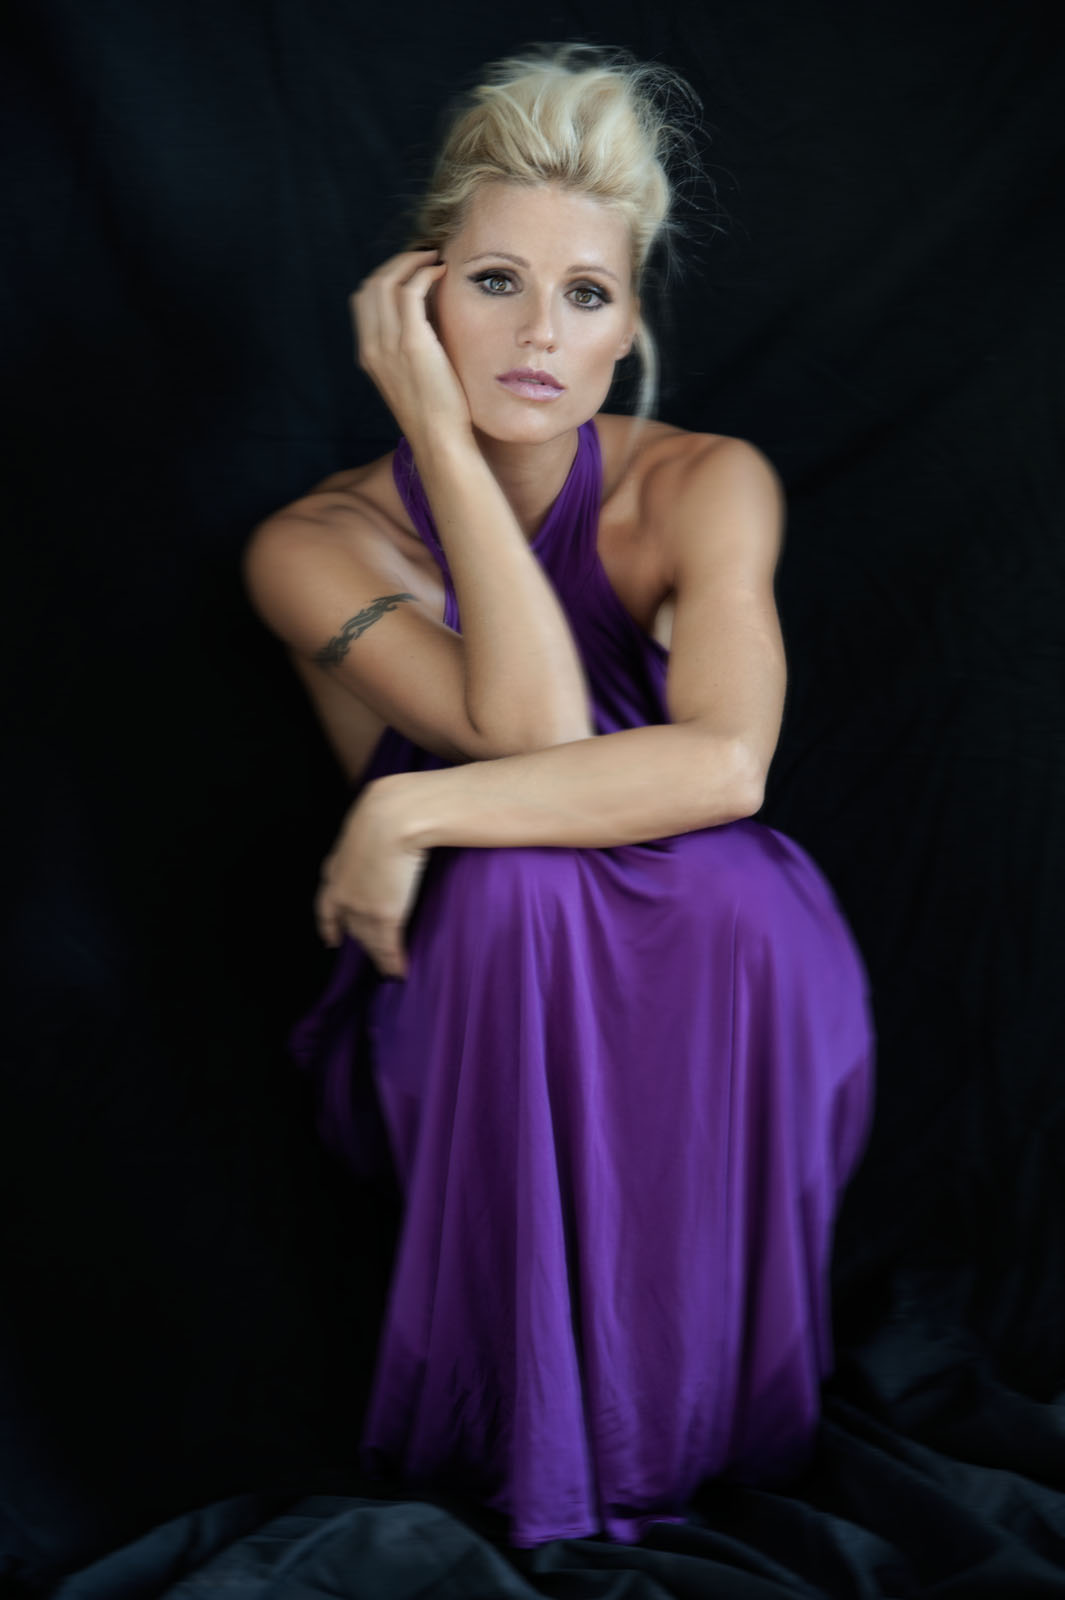 Preppie_Michelle_Hunziker_2011_studio_photoshoot_6.jpg